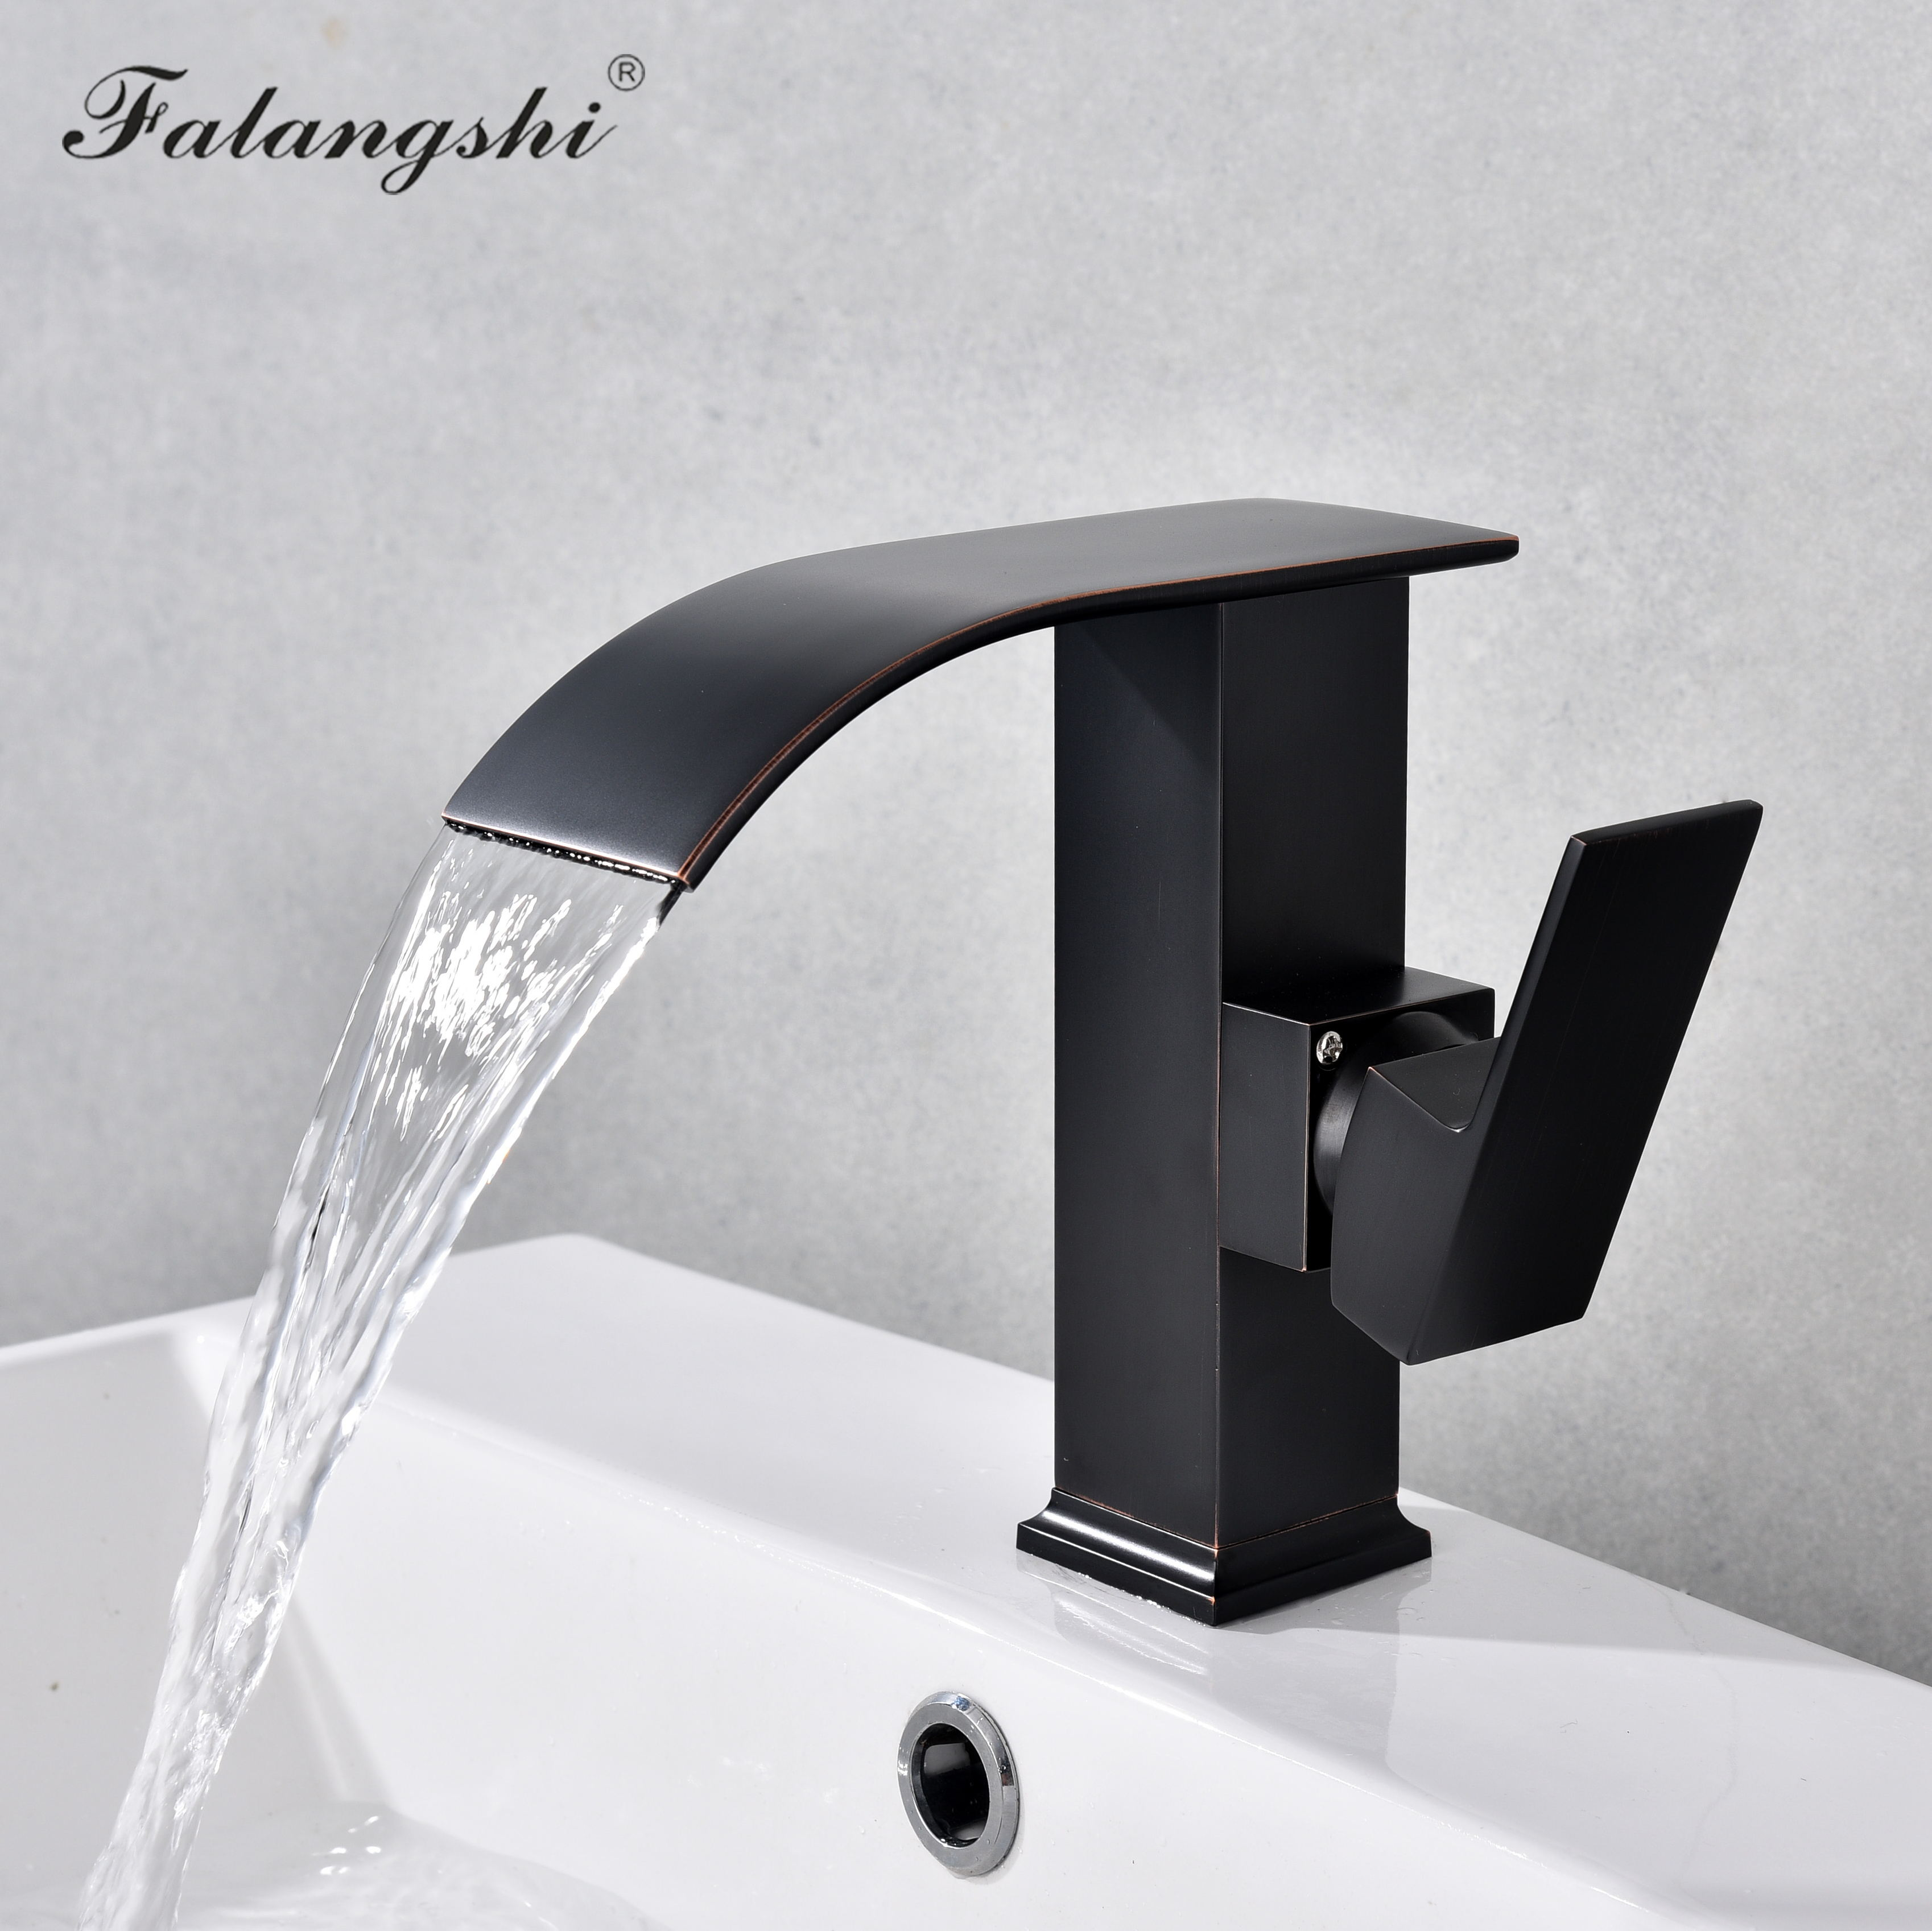 Bathroom Waterfall Faucets Basin Sink Taps Cold And Hot Water Vanity Vessel Sink Mixer Tap Deck Mounted WB1030Bathroom Waterfall Faucets Basin Sink Taps Cold And Hot Water Vanity Vessel Sink Mixer Tap Deck Mounted WB1030